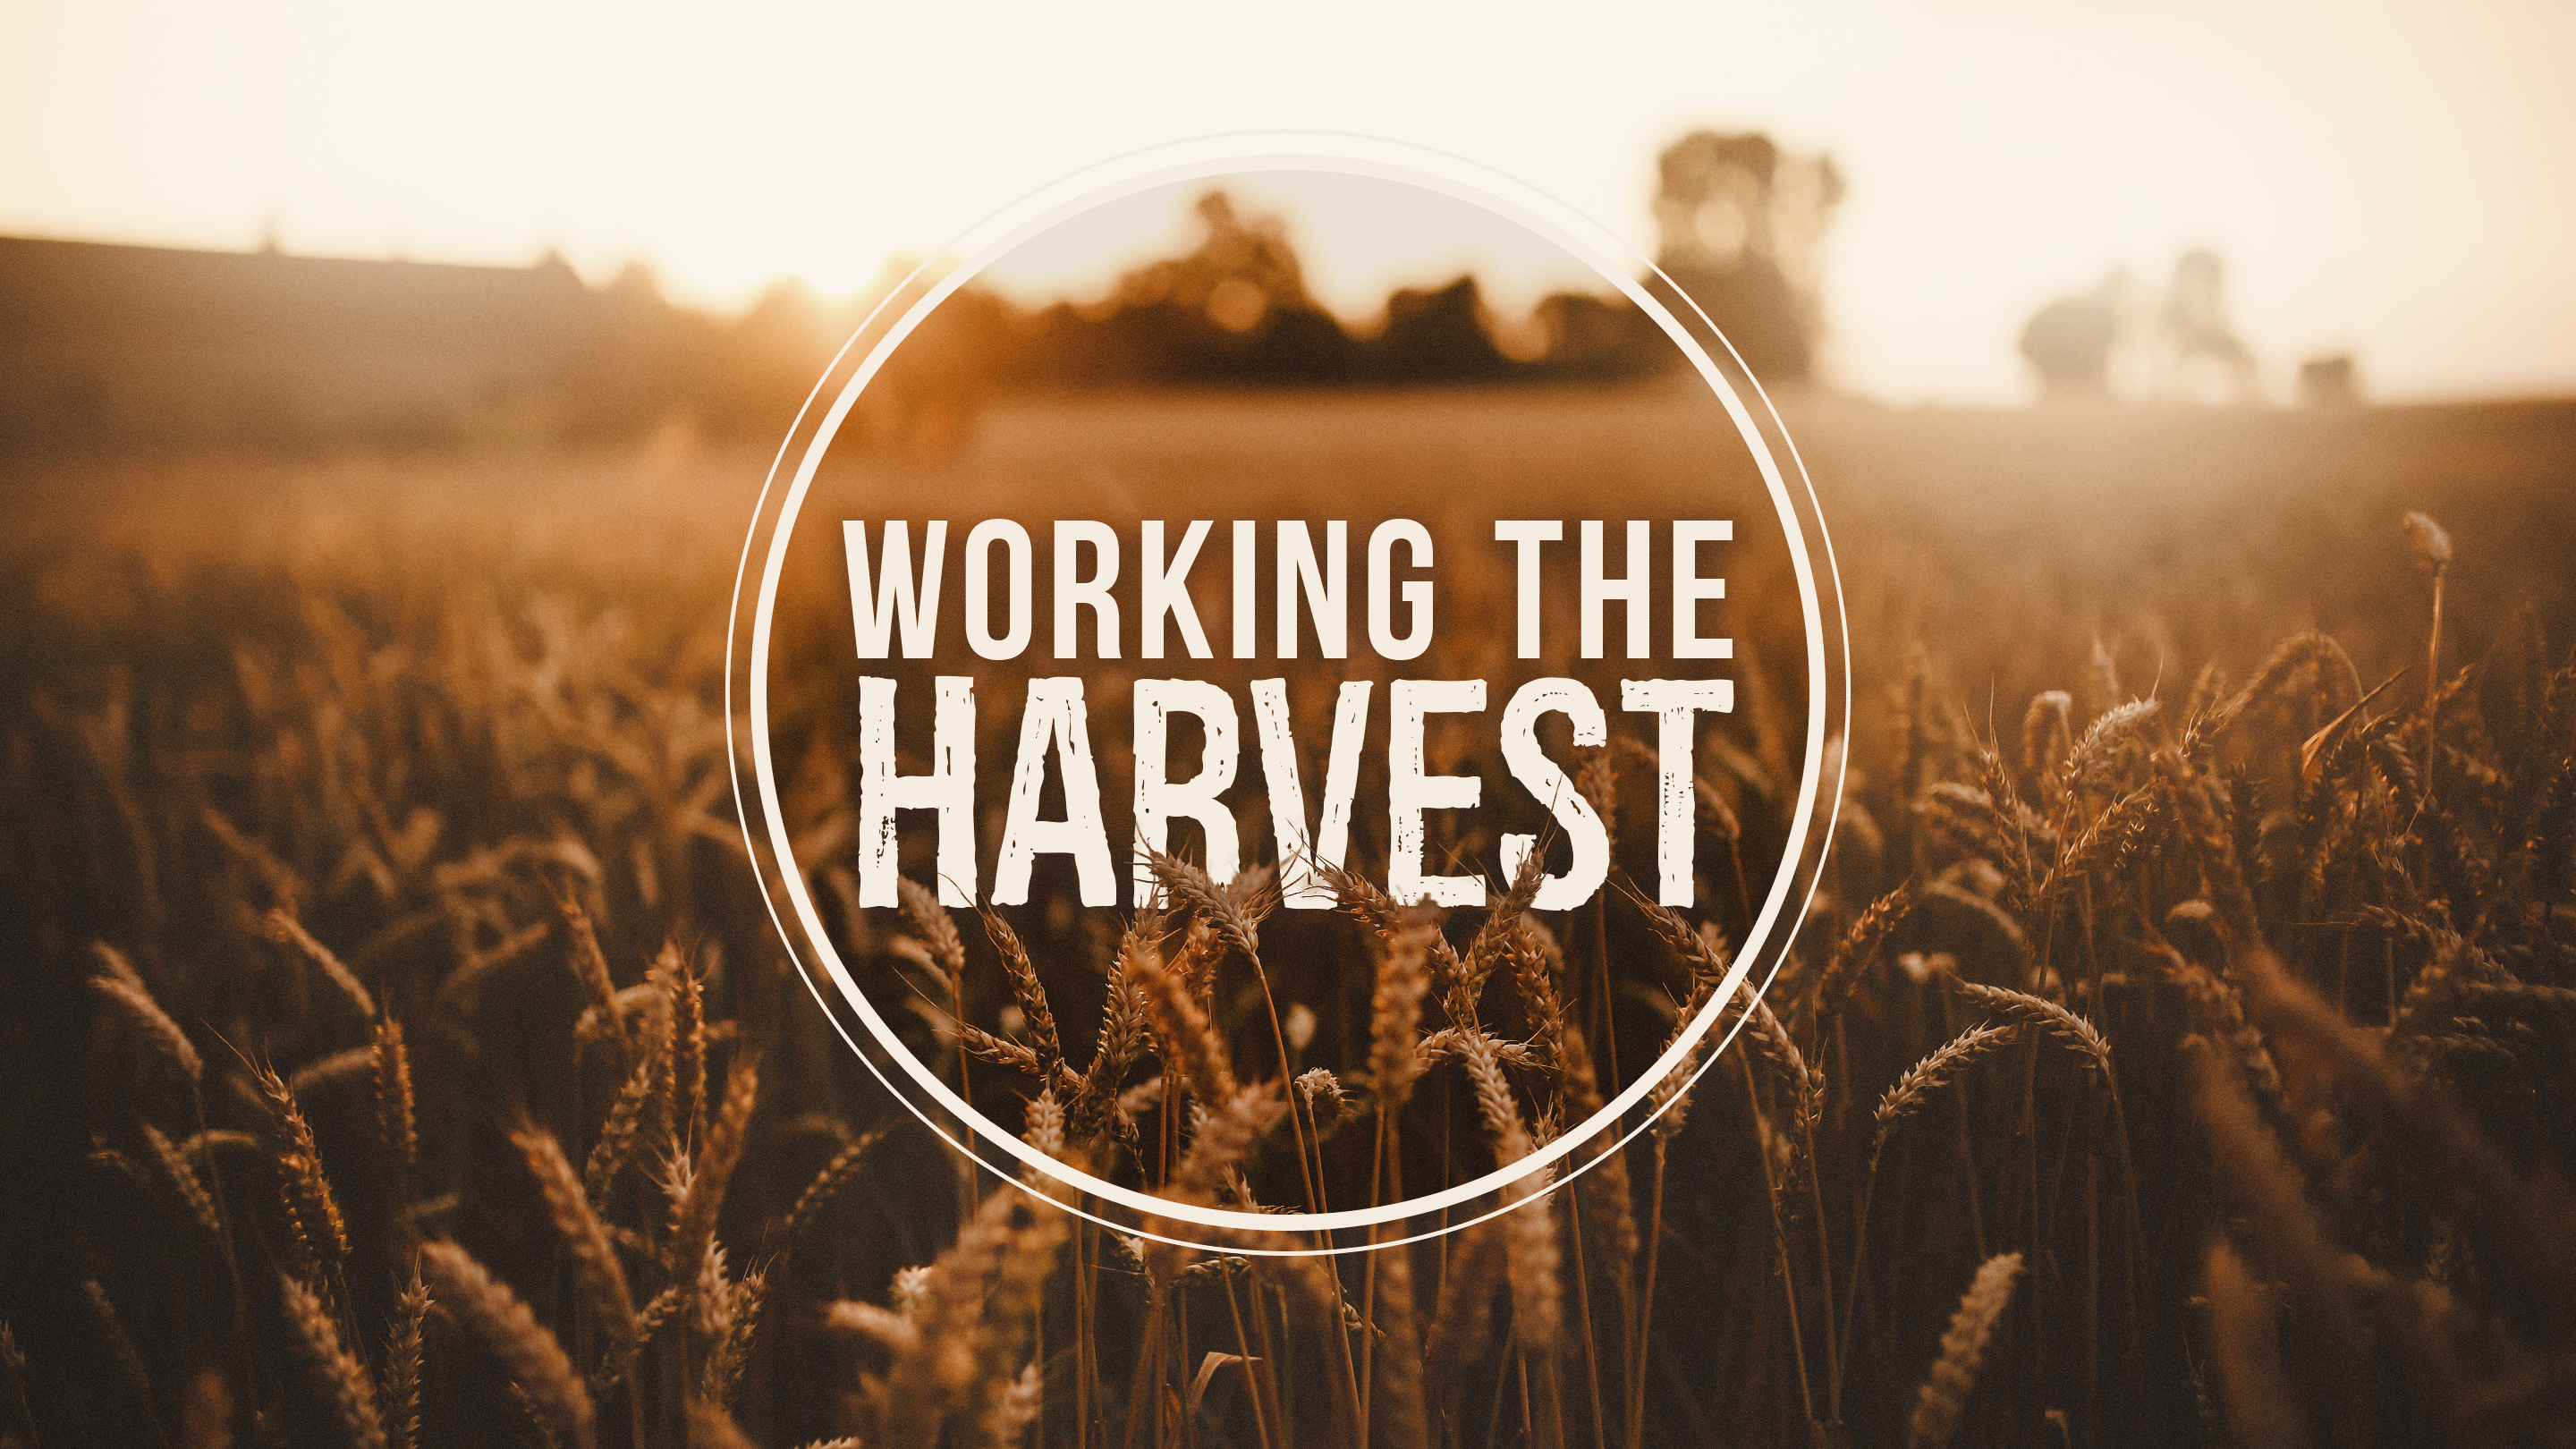 working-the-harvest-sermons-image